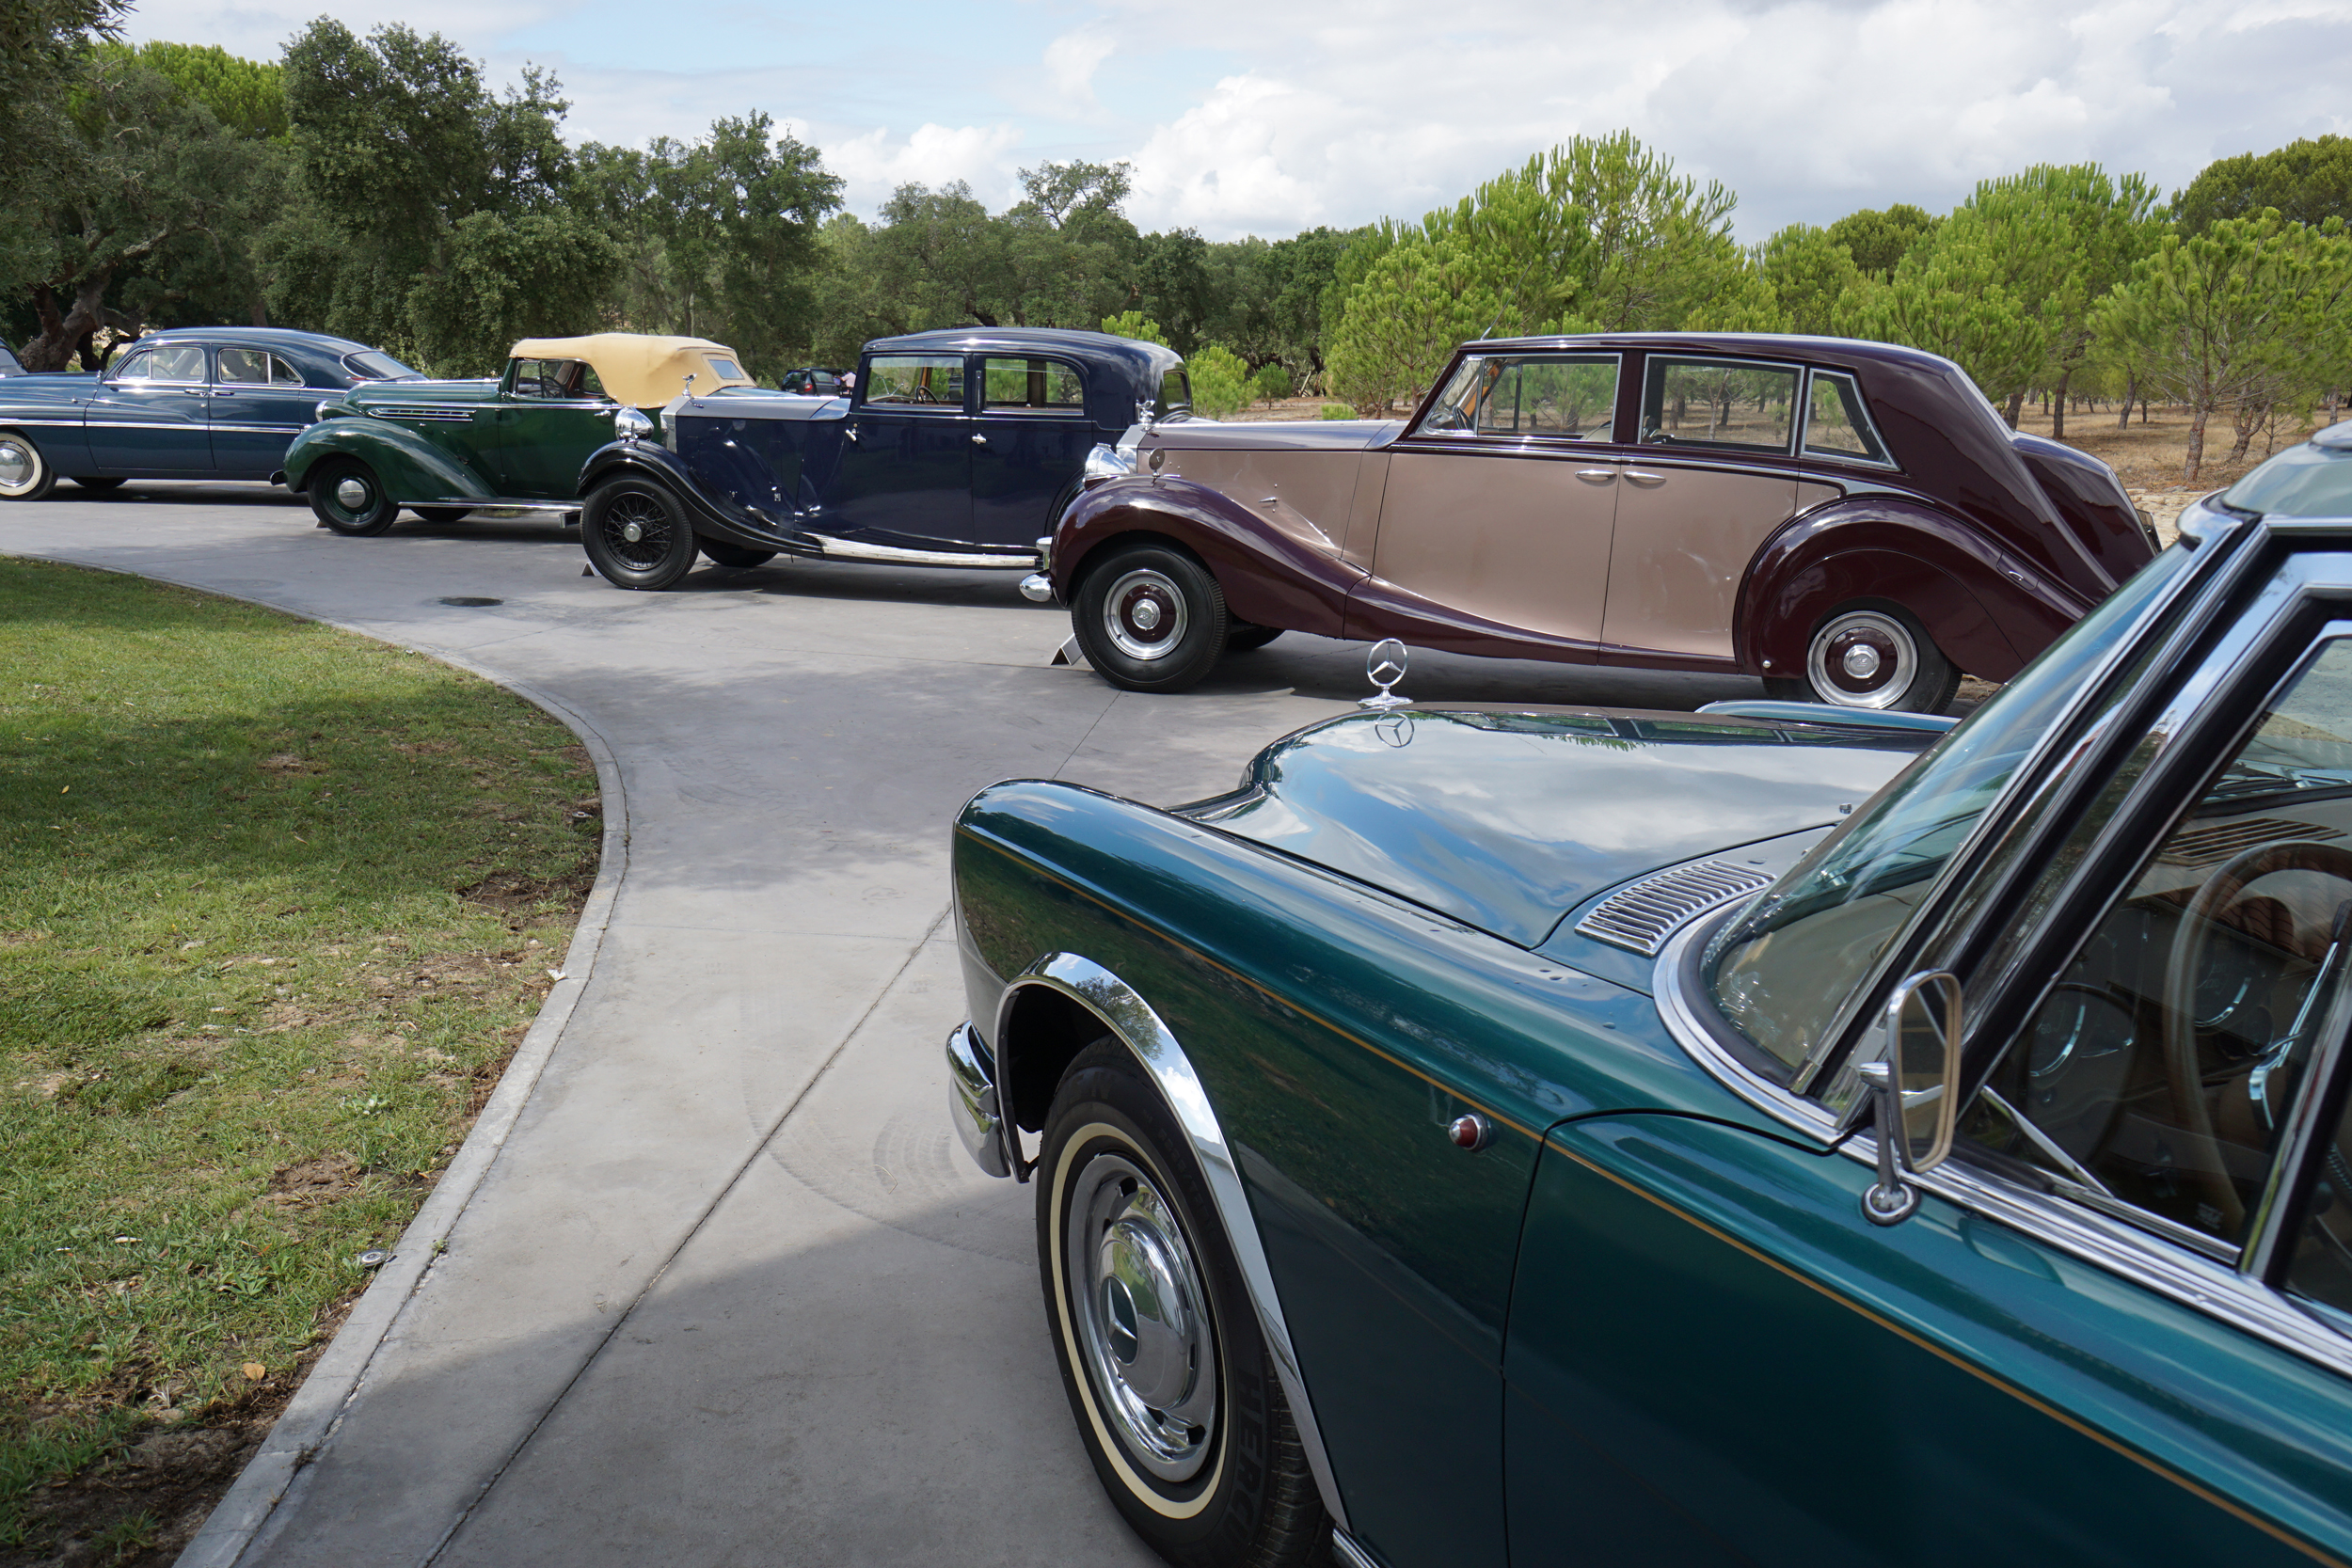 Just a few of the diverse cars on display during the preview of The Sáragga Collection (Peter Ward © 2019 Courtesy of RM Sotheby's) [7]